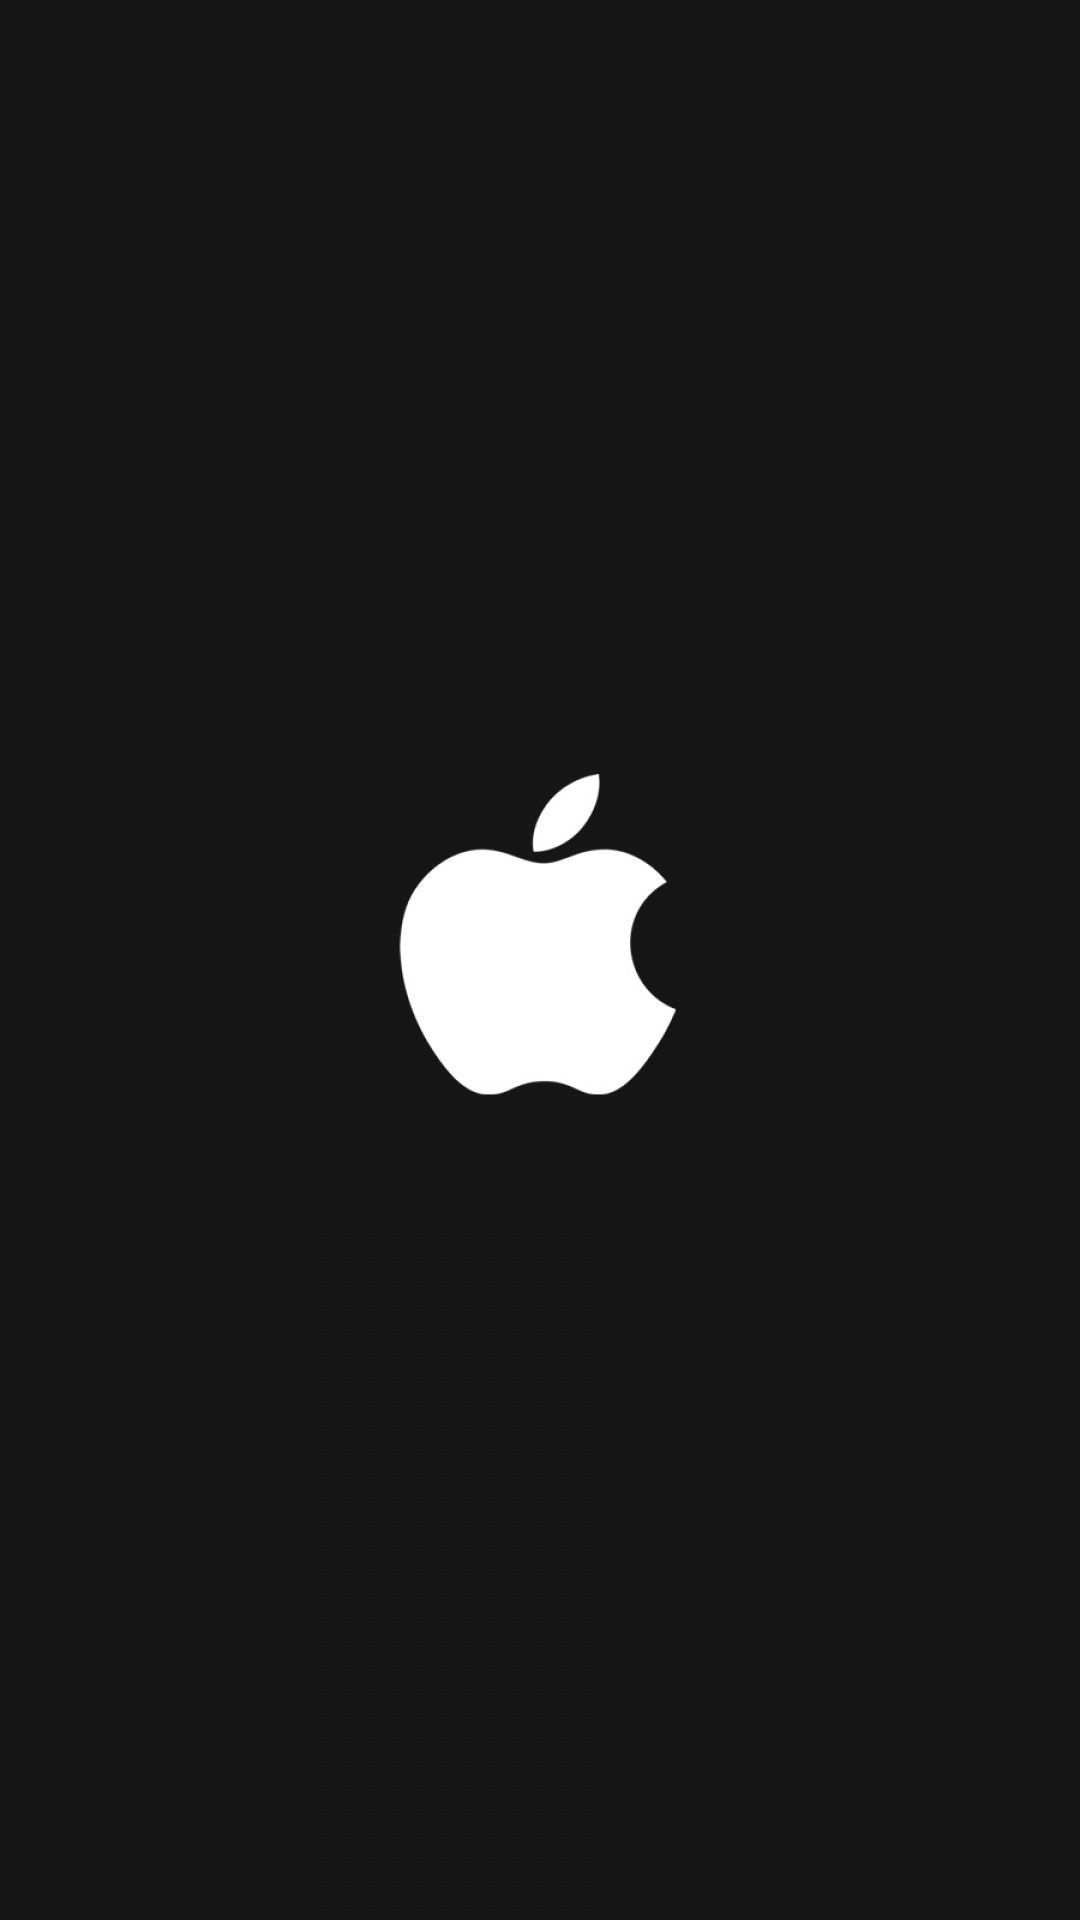 B W Quenalbertini Apple Logo Iphone Wallpaper Apple Logo